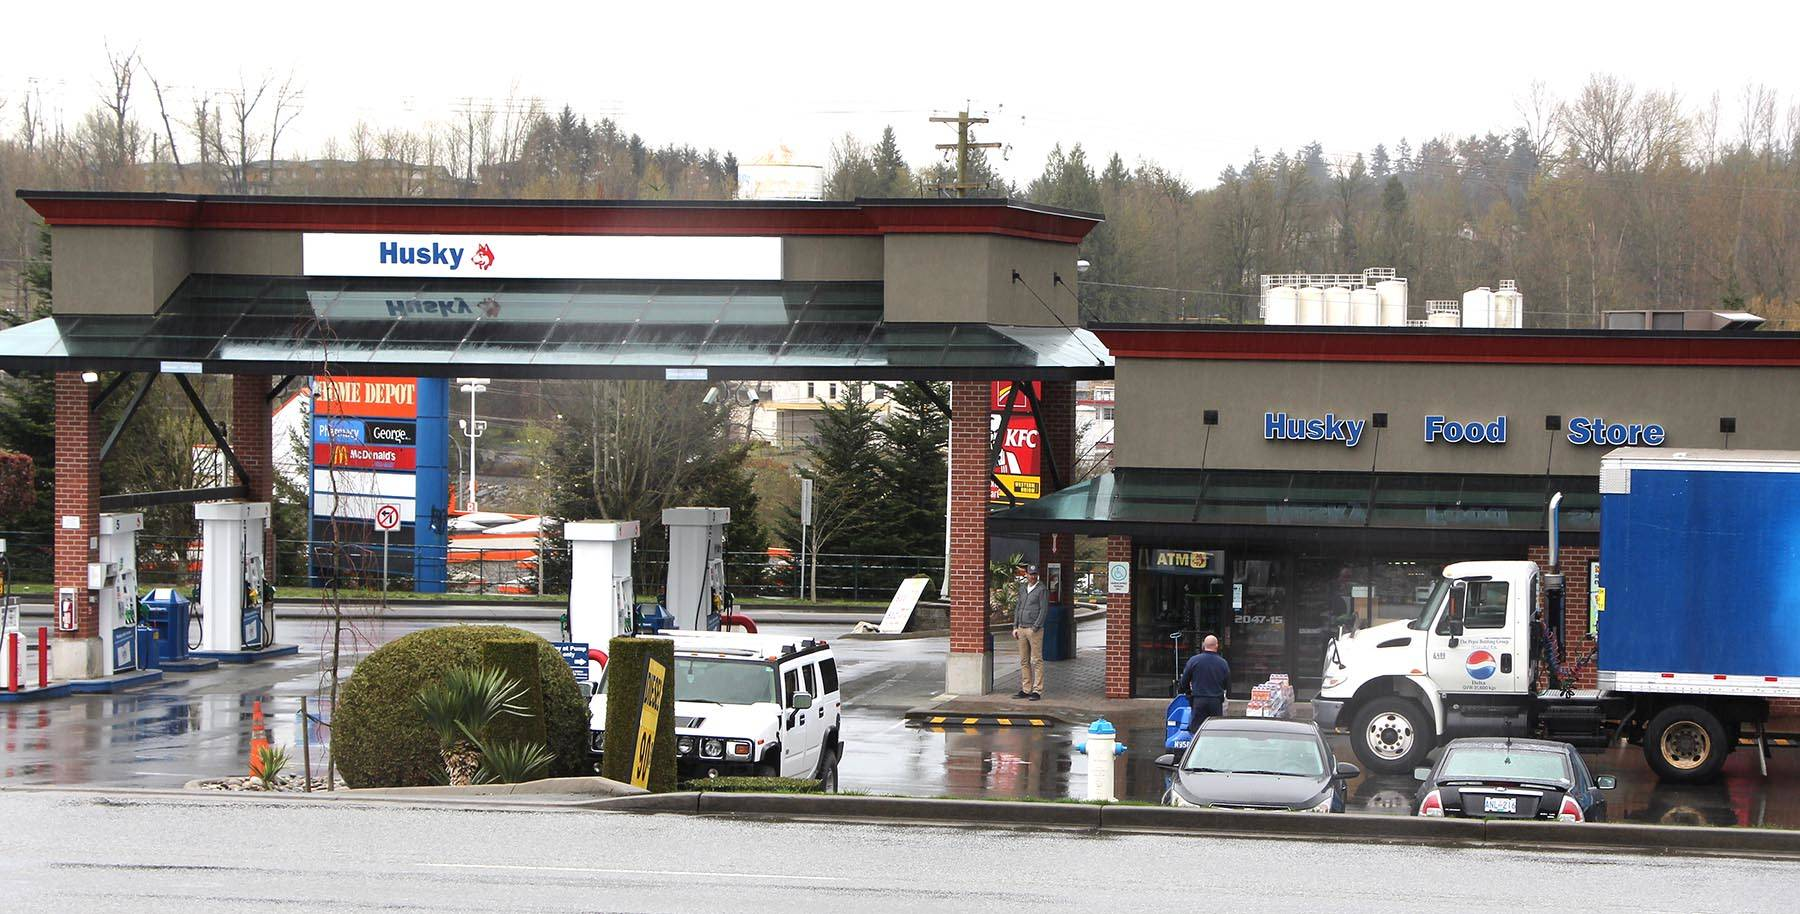 A Husky gas station in Abbotsford, B.C. (Google Street View image)